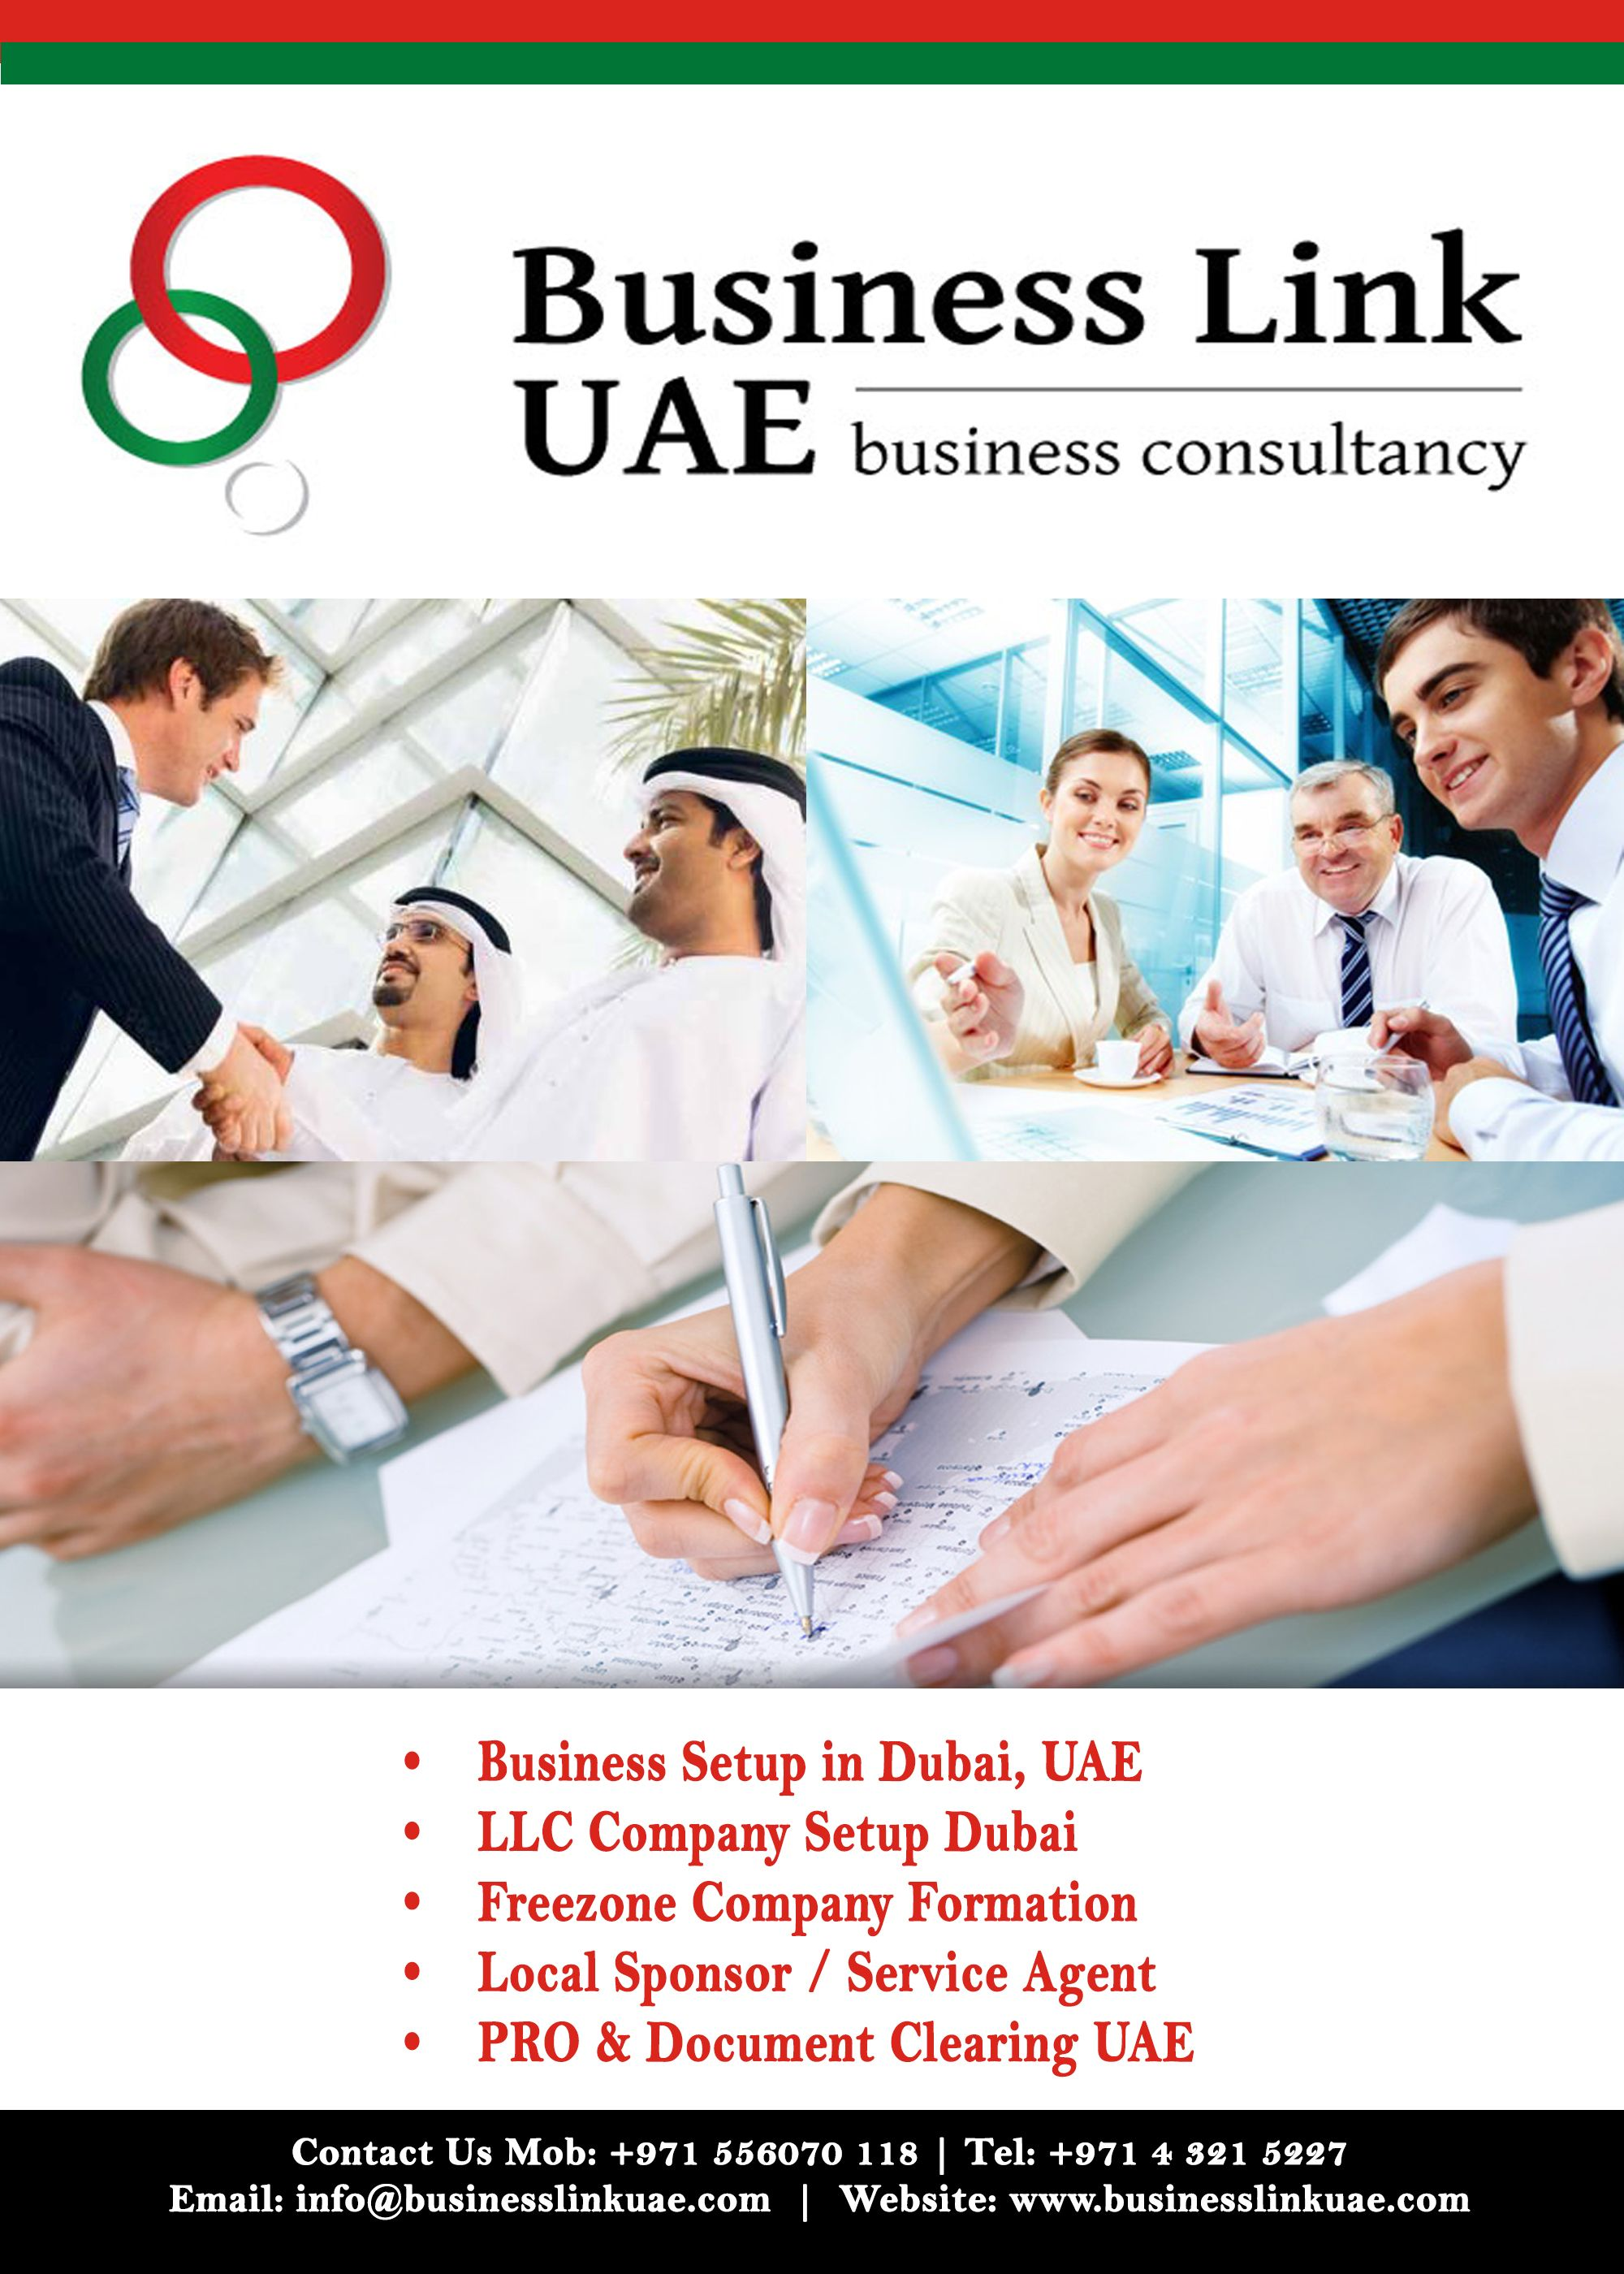 Looking for reliable Business Setup Consultancy in Dubai